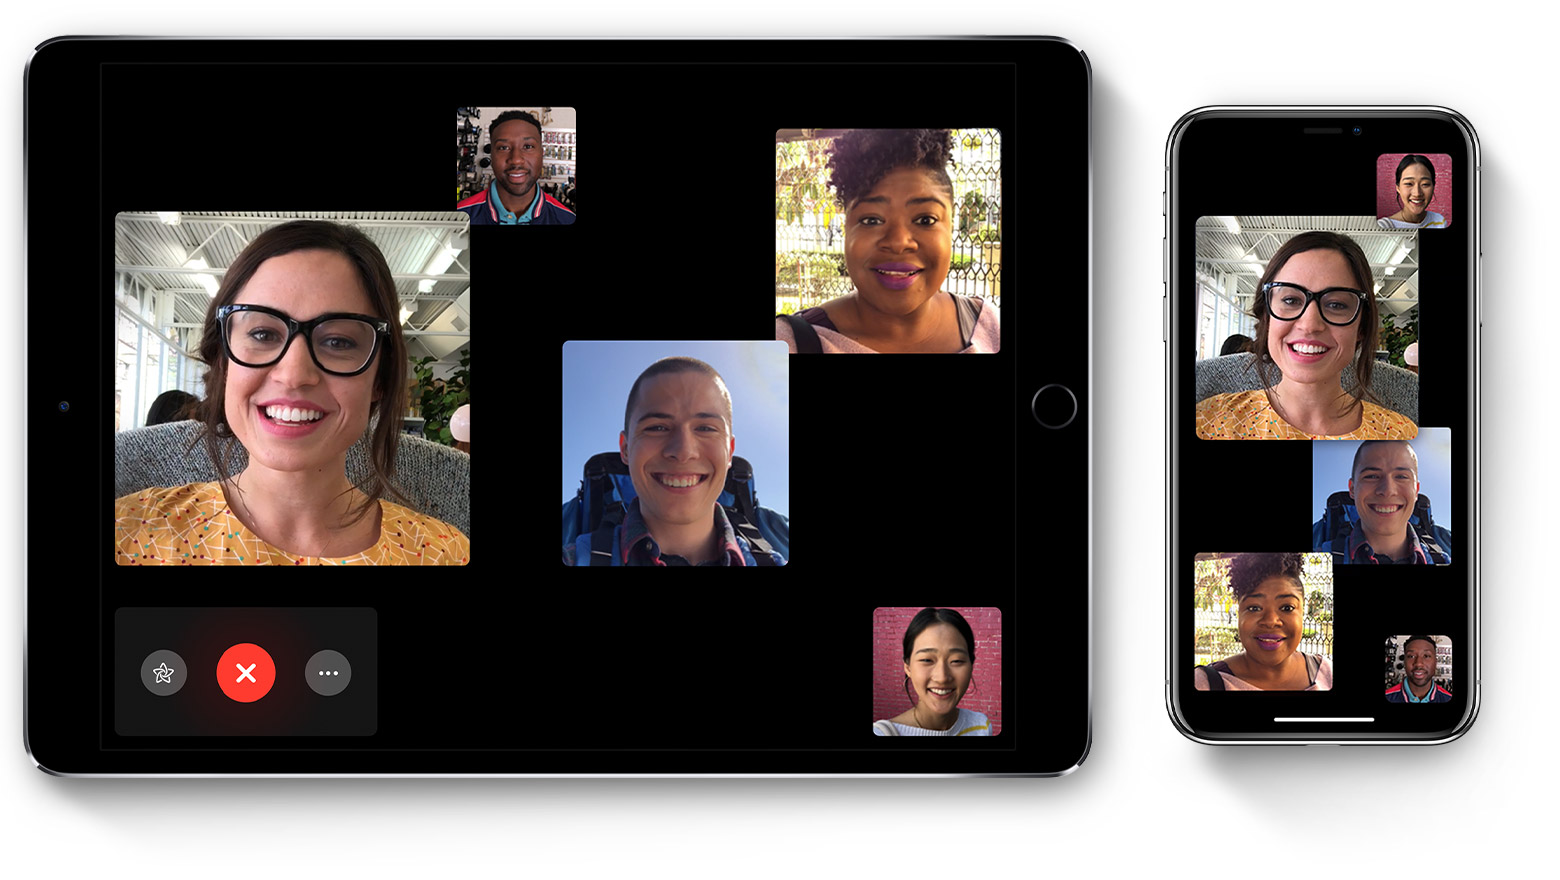 How to enable group chat FaceTime on iPhone, iPad and iPod Touch